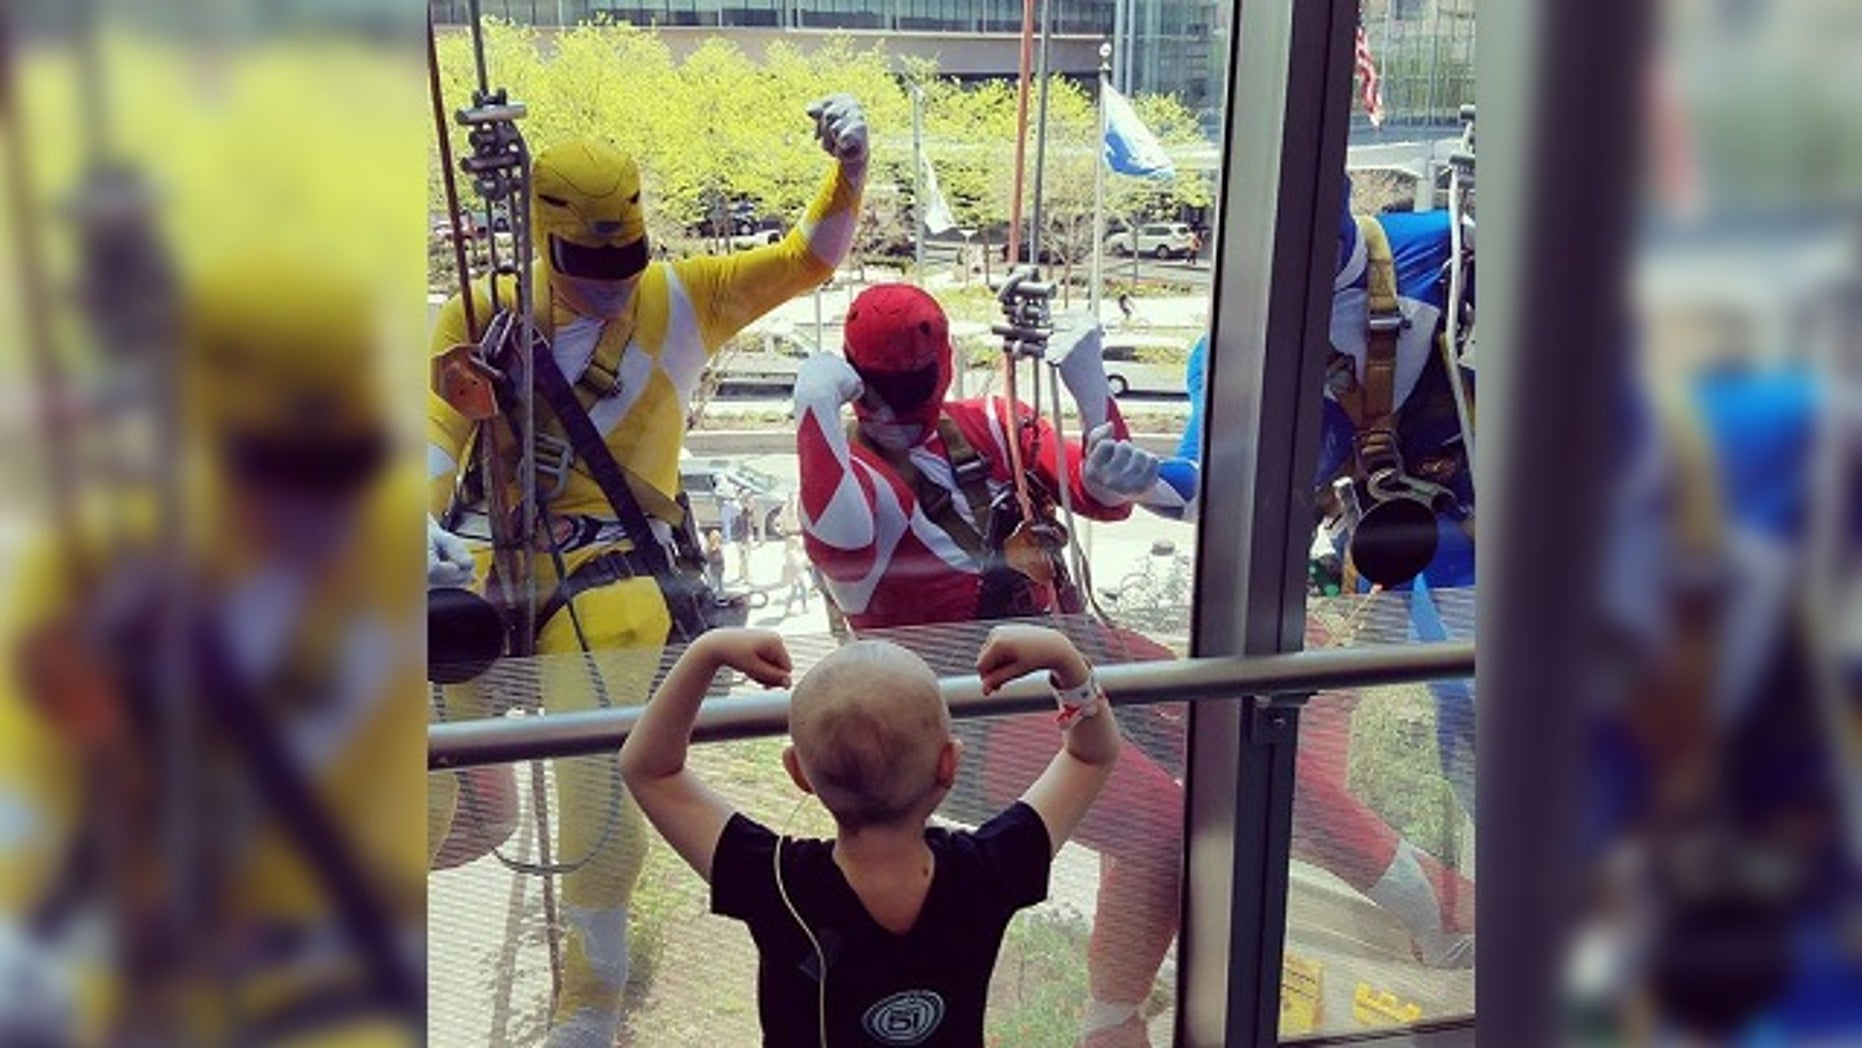 The hospital says the window washers are employees of Jenkintown Building Services, and that this isn't the first time they've dressed up for the children.